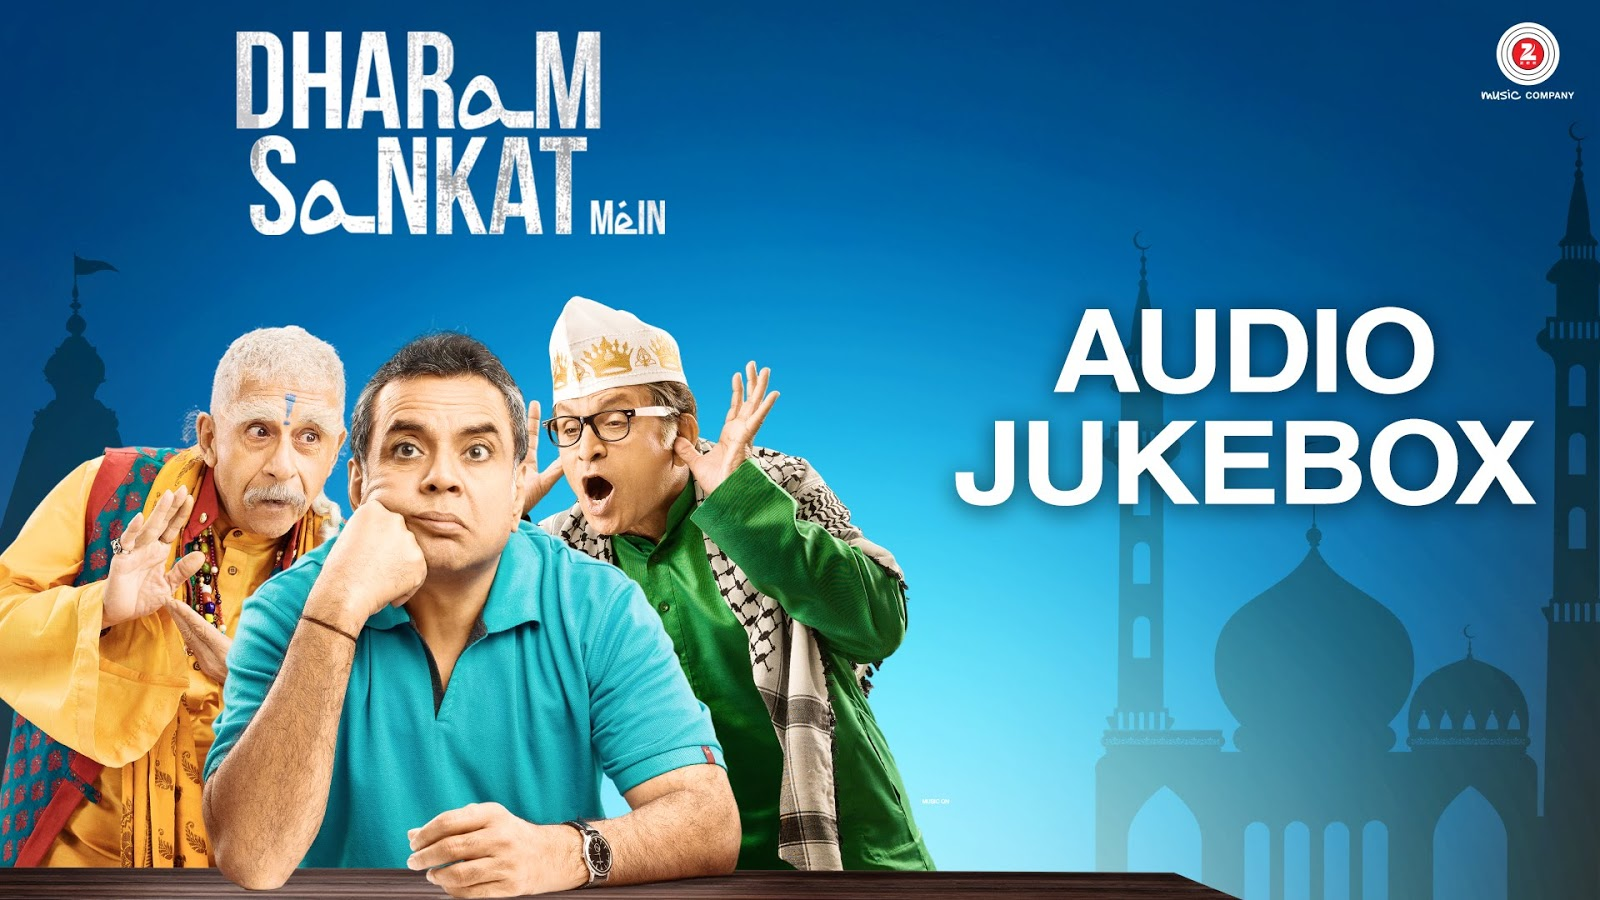 Dharam sankat mein (2015) review filmicafe.